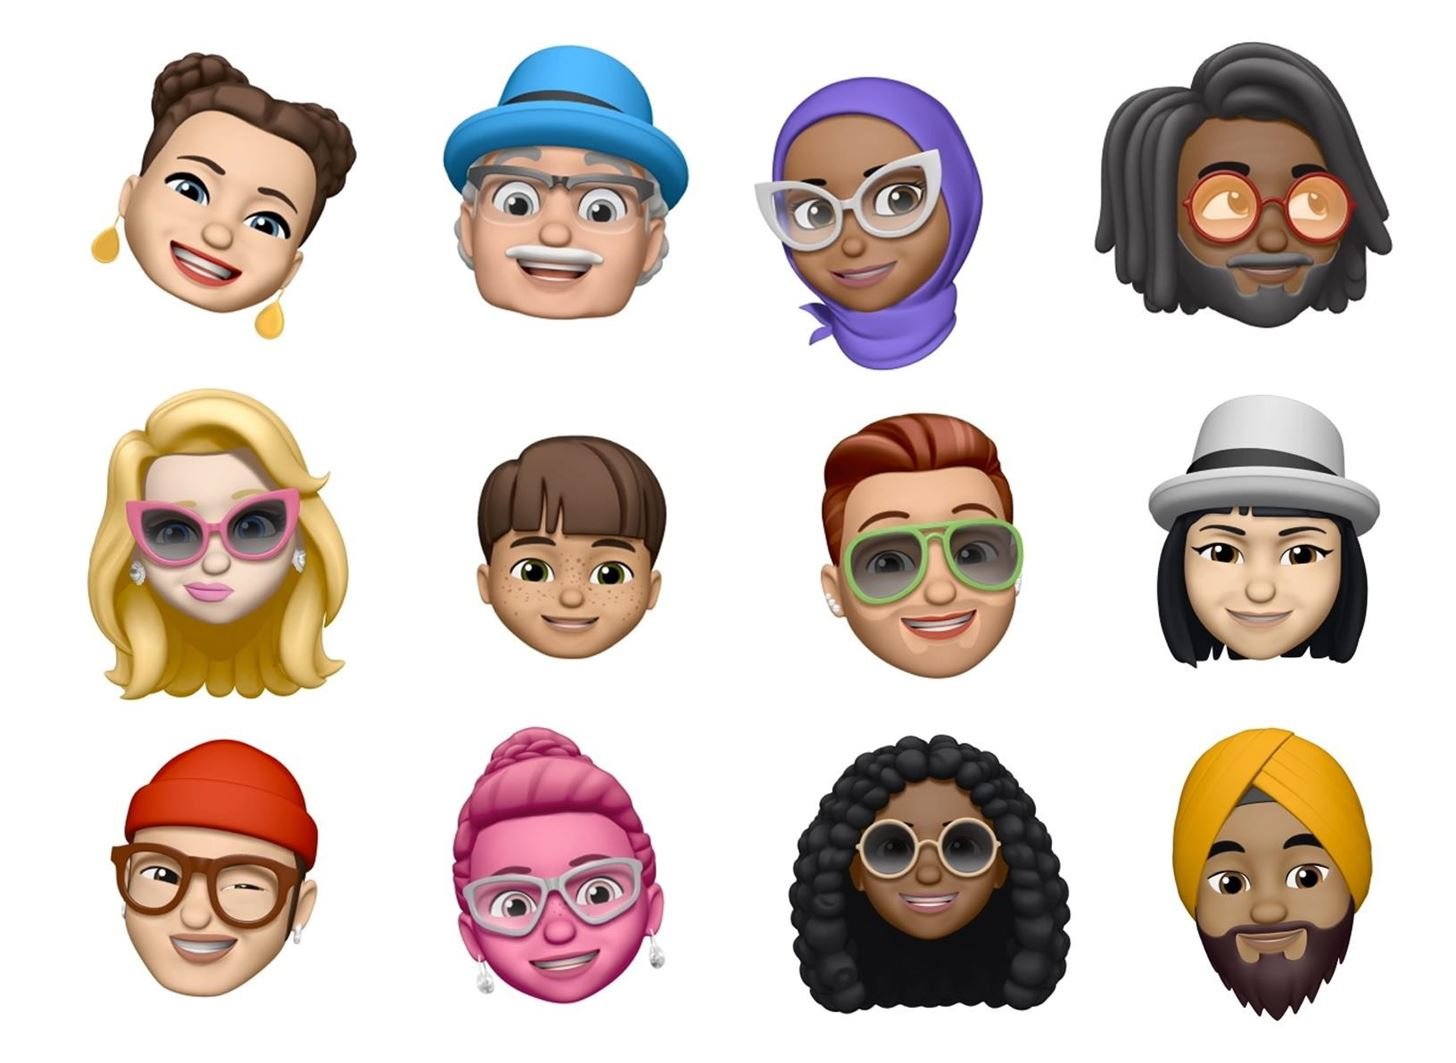 55 Cool New iOS 12 Features You Didn't Know About